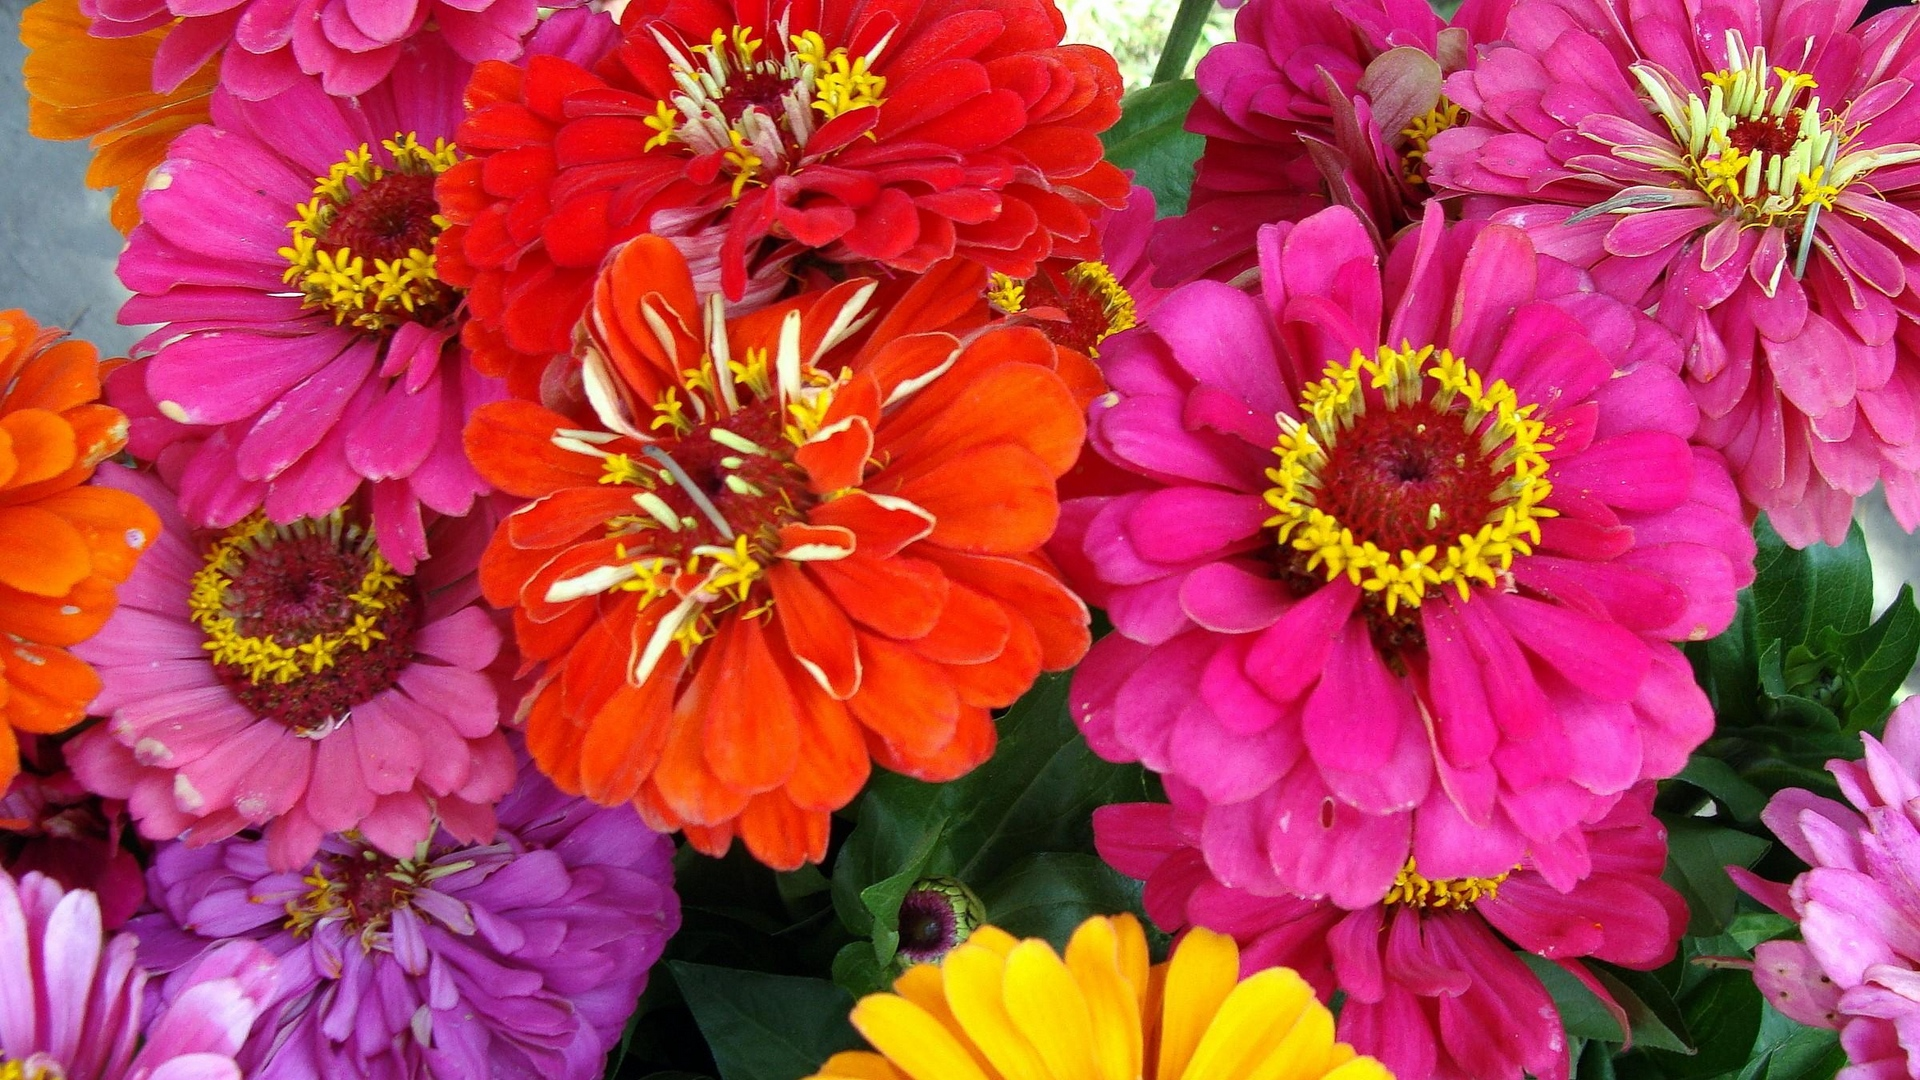 zinnias flowers bright close up x